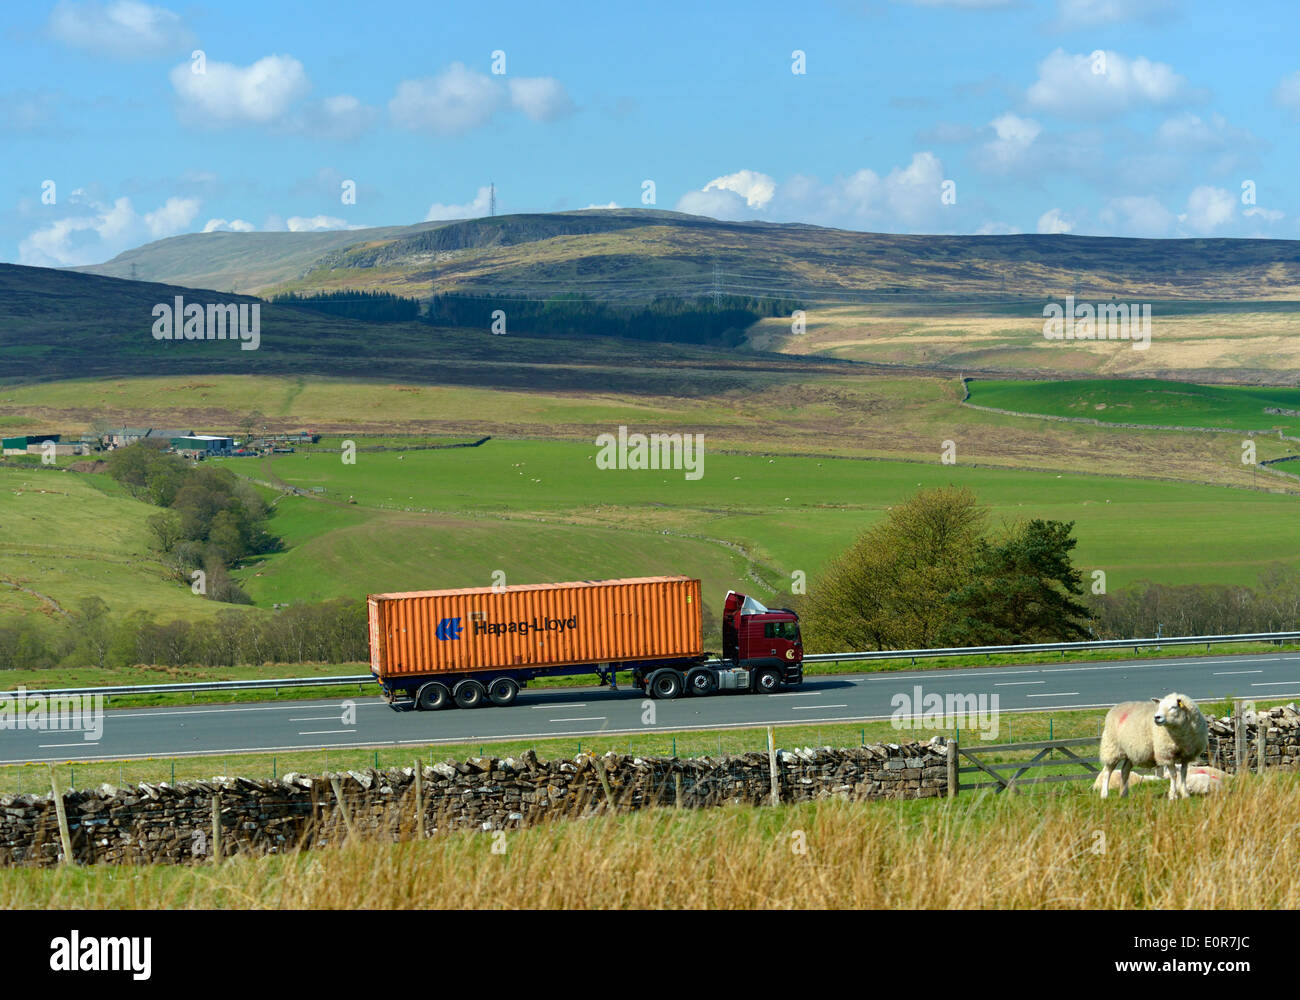 hapag-lloyd-container-hgv-on-m6-motorway-shap-cumbria-england-united-E0R7JC.jpg